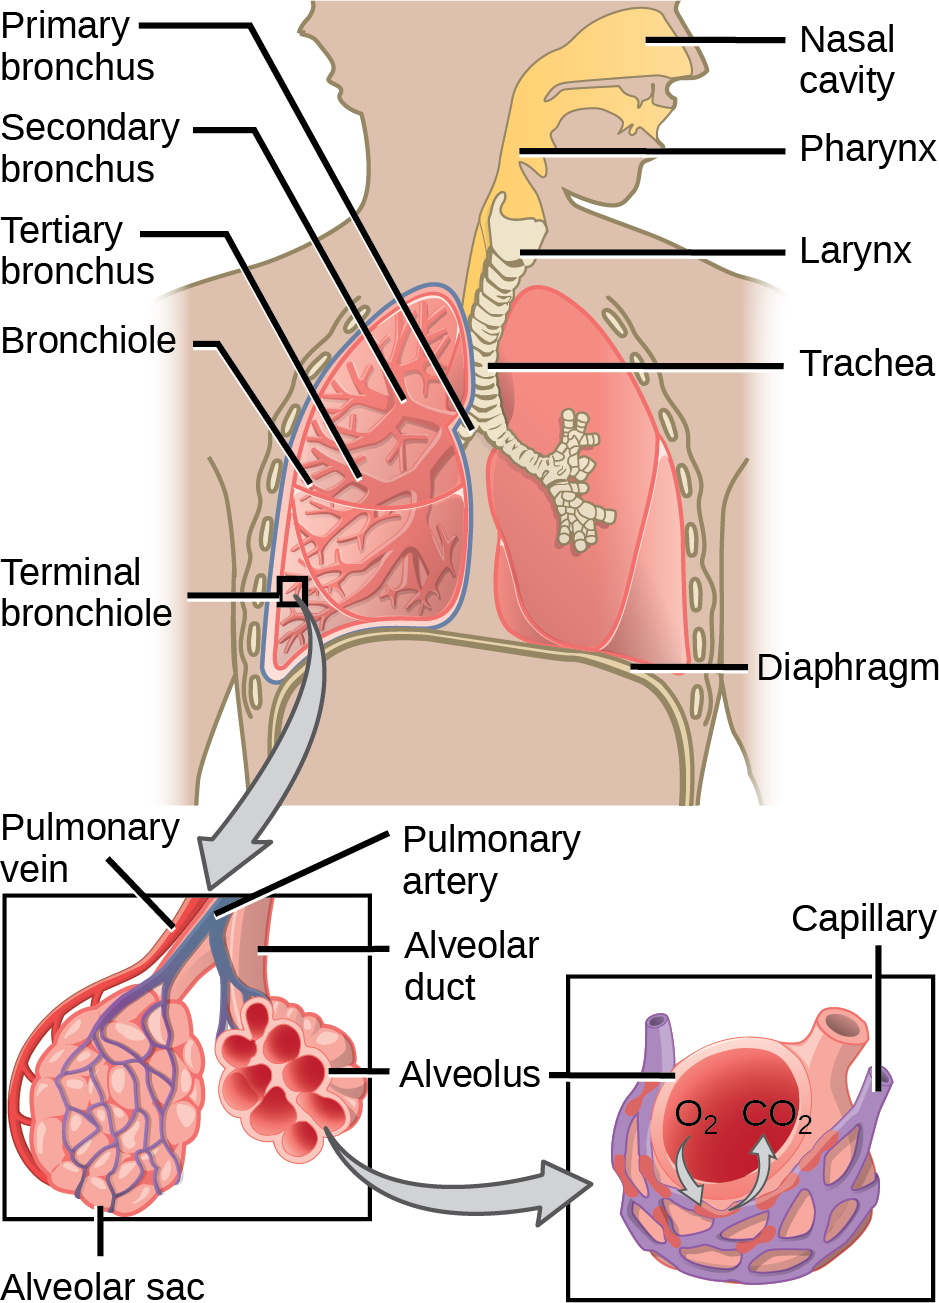 The illustration shows the flow of air through the human respiratory system. The nasal cavity is a wide cavity above and behind the nostrils, and the pharynx is the passageway behind the mouth. The nasal cavity and pharynx join and enter the trachea through the larynx. The larynx is somewhat wider than the trachea and flat. The trachea has concentric, ring-like grooves, giving it a bumpy appearance. The trachea bifurcates into two primary bronchi, which are also grooved. The primary bronchi enter the lungs, and branch into secondary bronchi. The secondary bronchi in turn branch into many tertiary bronchi. The tertiary bronchi branch into bronchioles, which branch into terminal bronchioles. Each terminal bronchiole ends in an alveolar sac. Each alveolar sac contains many alveoli clustered together, like bunches of grapes. The alveolar duct is the air passage into the alveolar sac. The alveoli are hollow, and air empties into them. Pulmonary arteries bring deoxygenated blood to the alveolar sac (and thus appear blue), and pulmonary veins return oxygenated blood (and thus appear red) to the heart. Capillaries form a web around each alveolus. The diaphragm is a membrane that pushes up against the lungs.